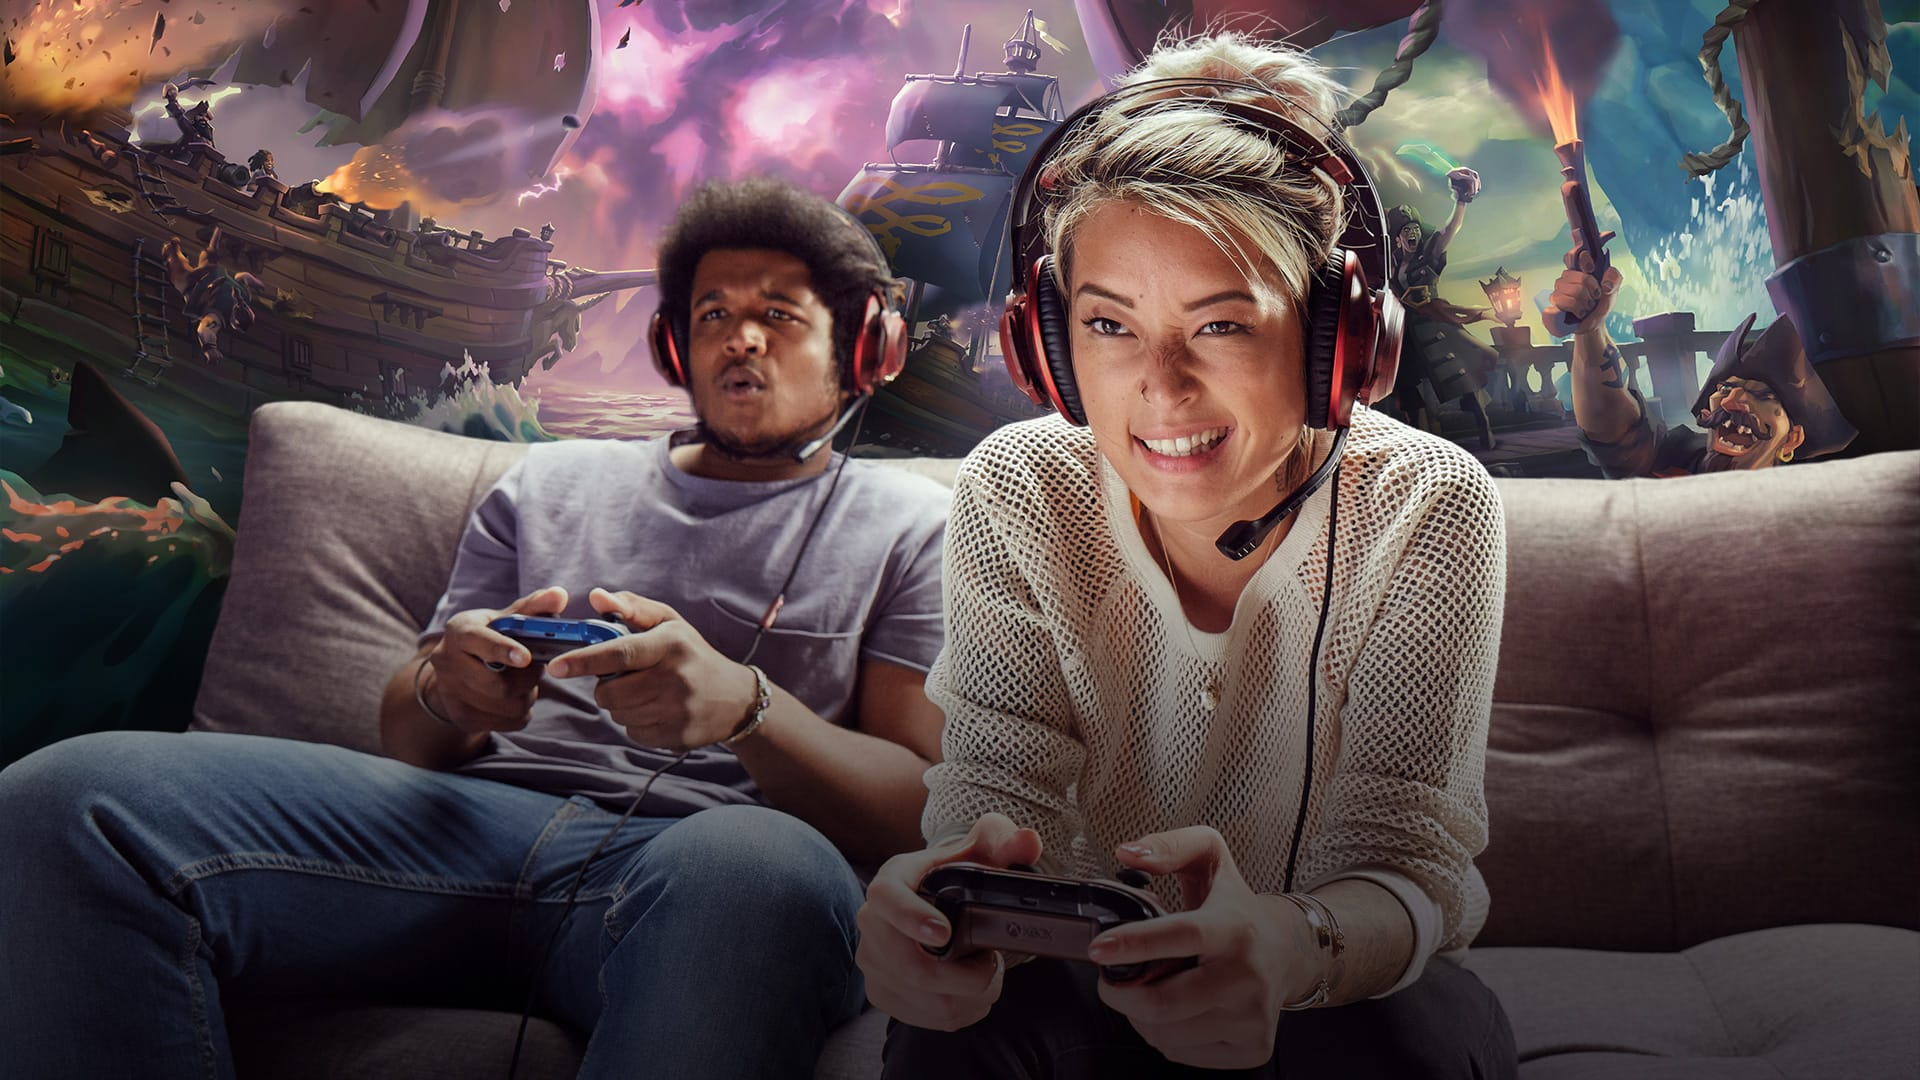 Two people wearing headsets playing Sea of Thieves on a sofa